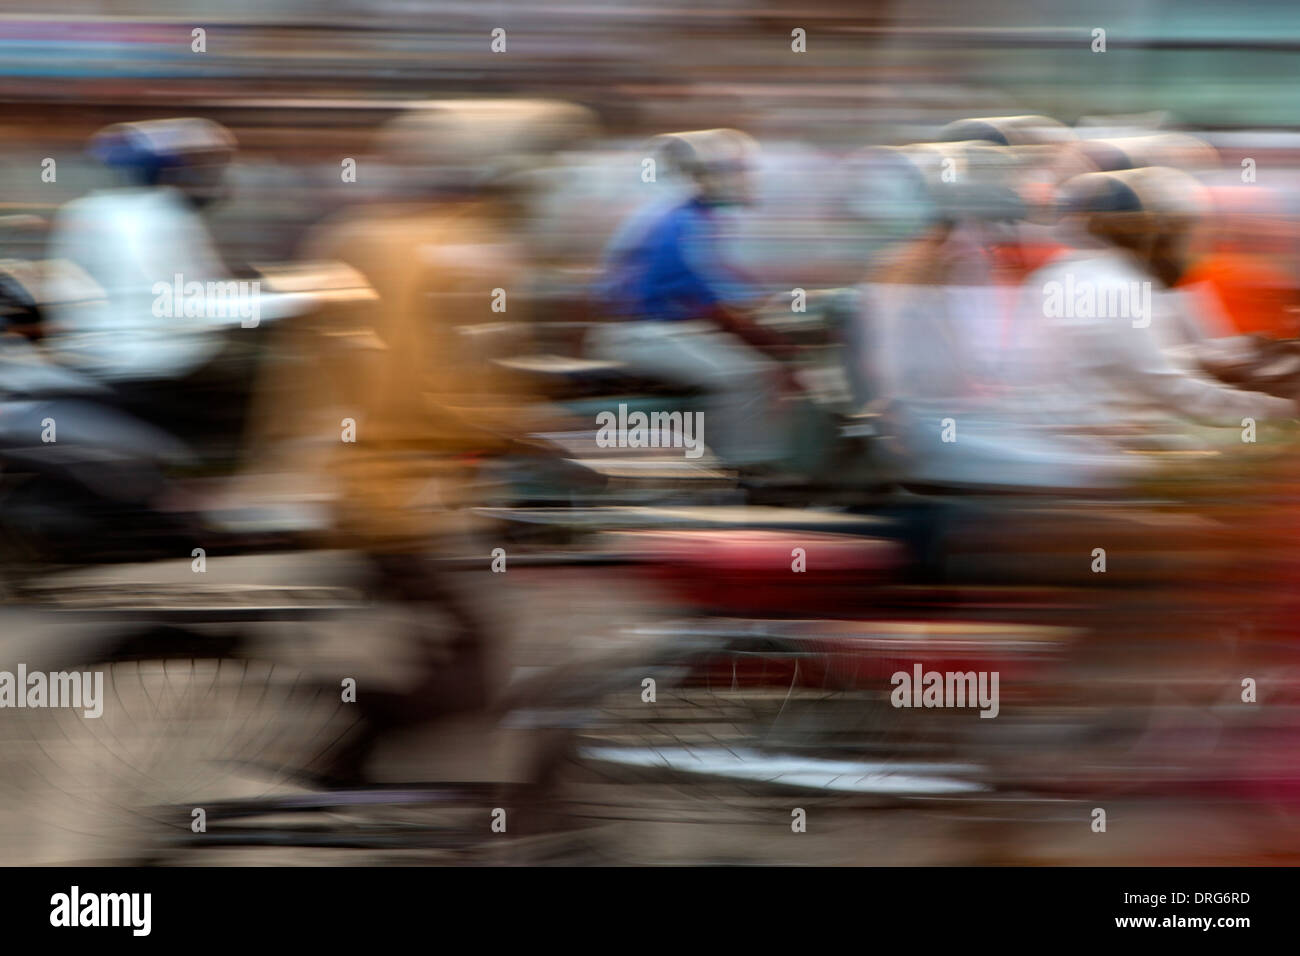 India, Rajasthan, Jaipur, Blur motion effect of commuters on bikes and motorbikes - Stock Image